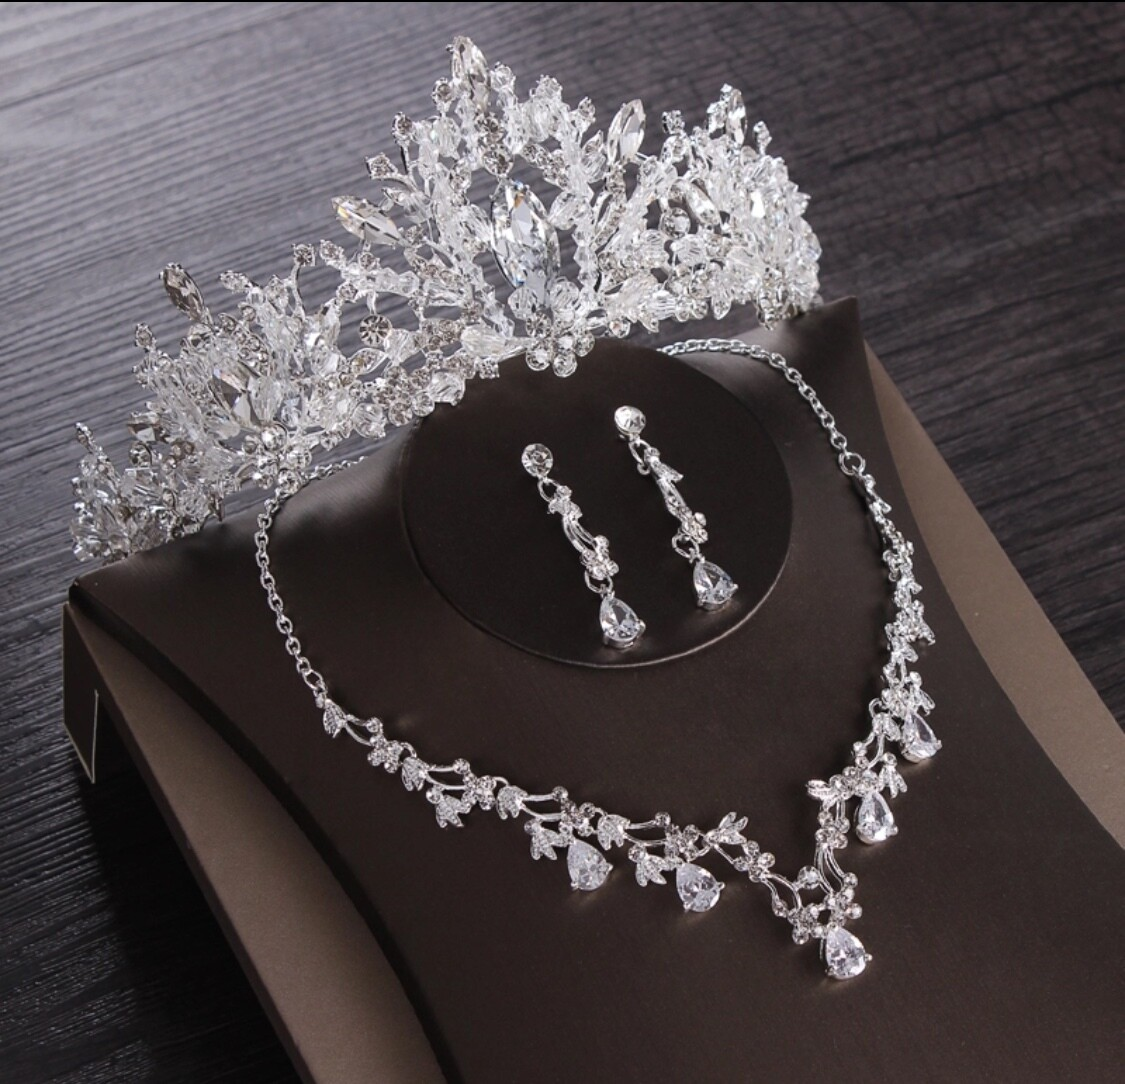 Luxury Crystal Bridal Jewelry Sets Wedding Cubic Zircon Crown Tiaras Earring Choker Necklace Set